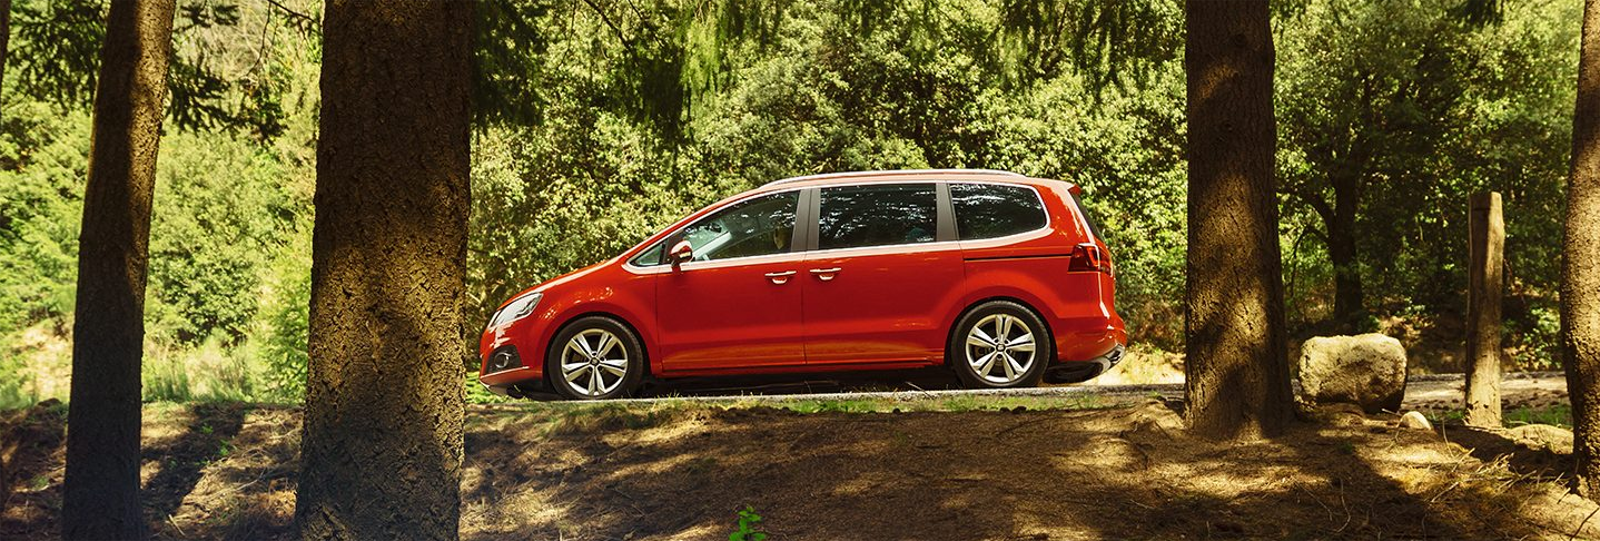 Lateral Seat Alhambra